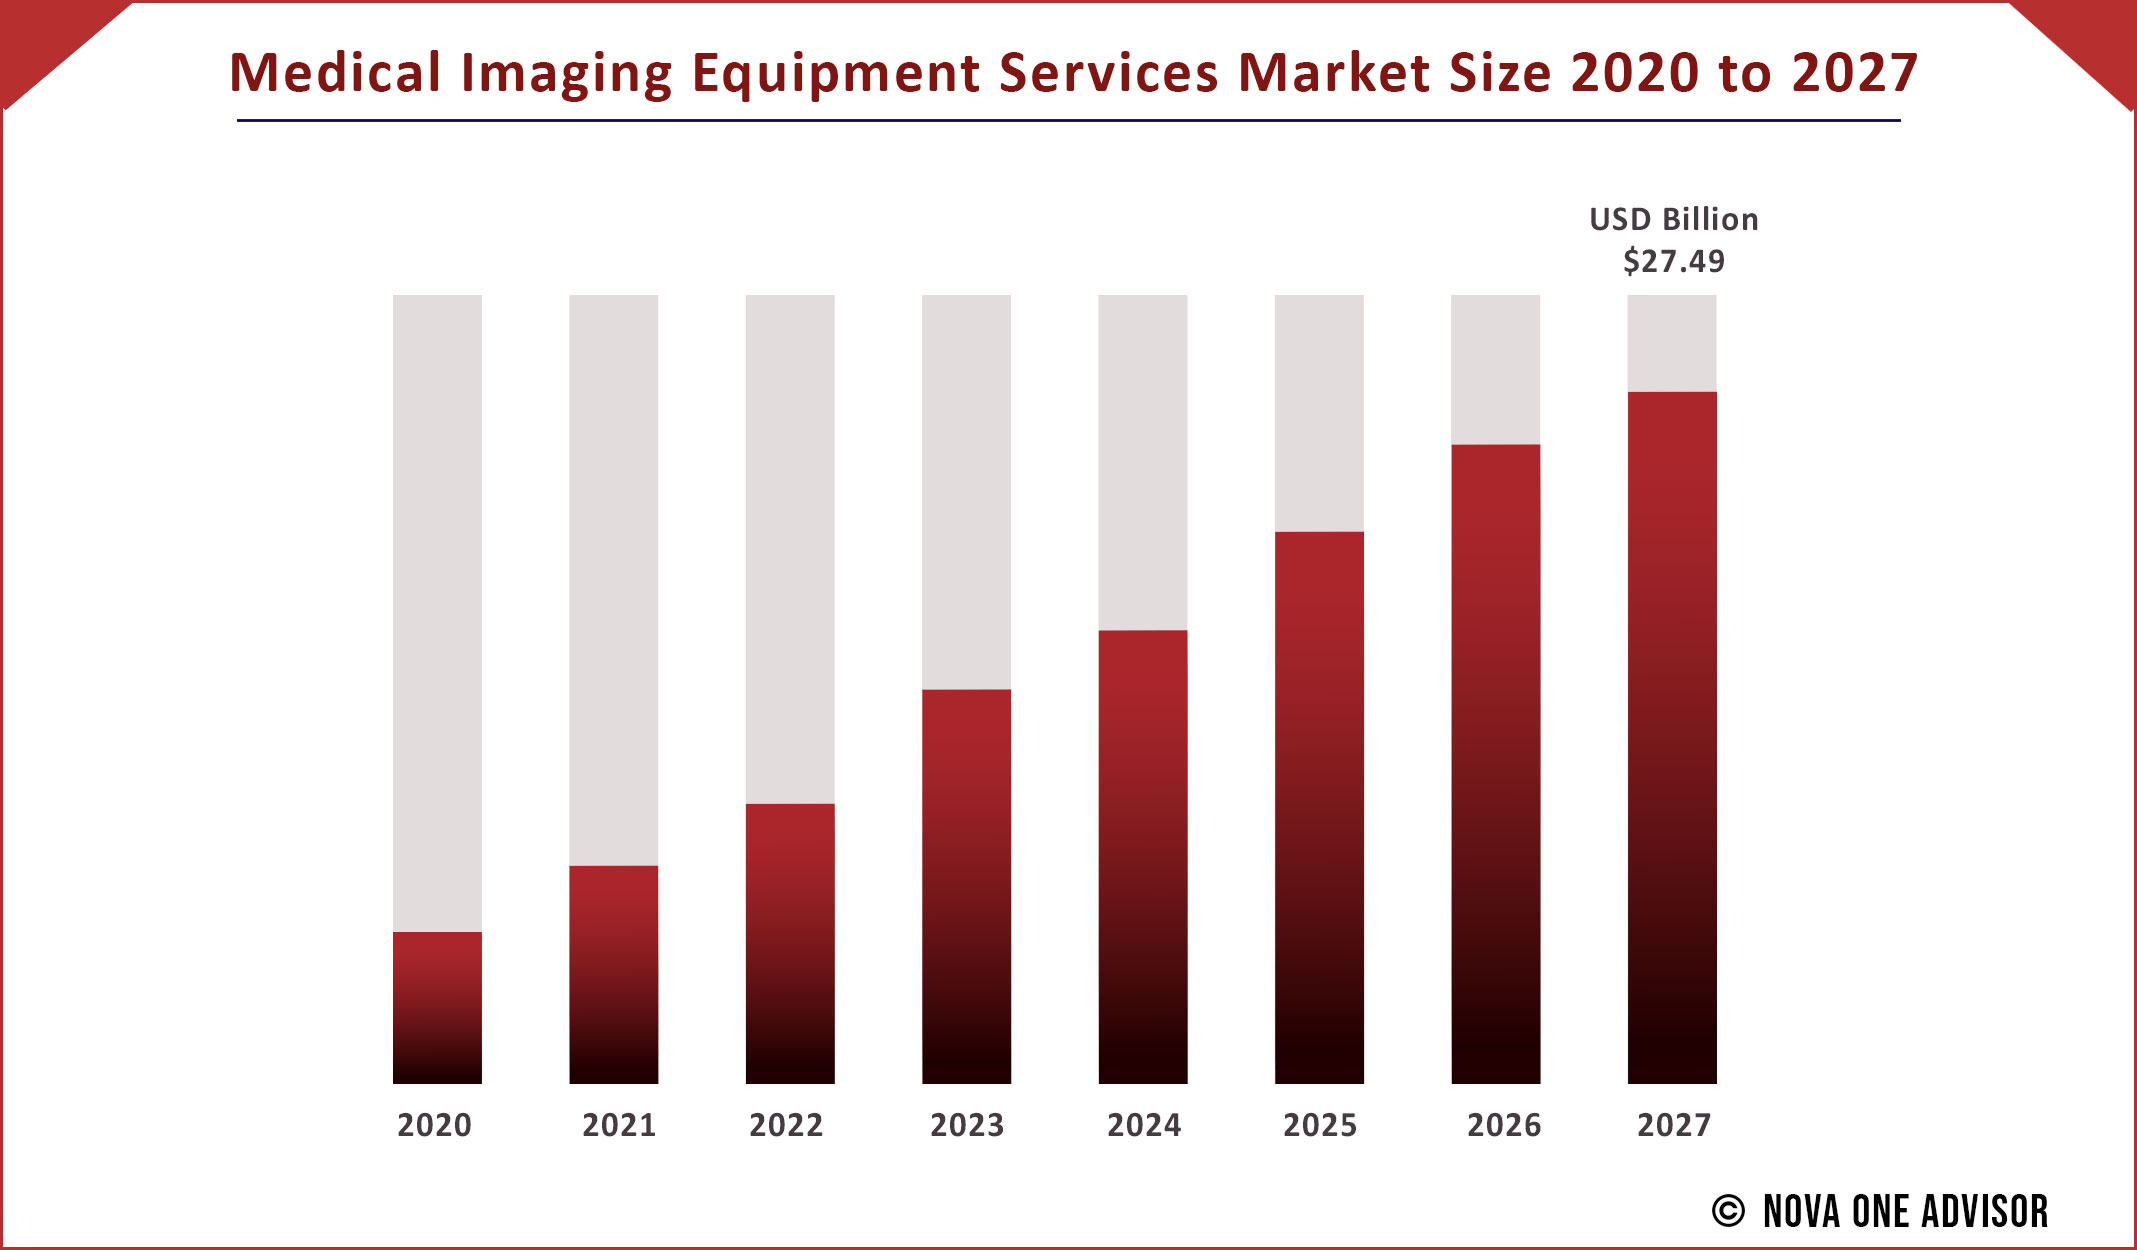 Medical Imaging Equipment Services Market Size 2020 to 2027